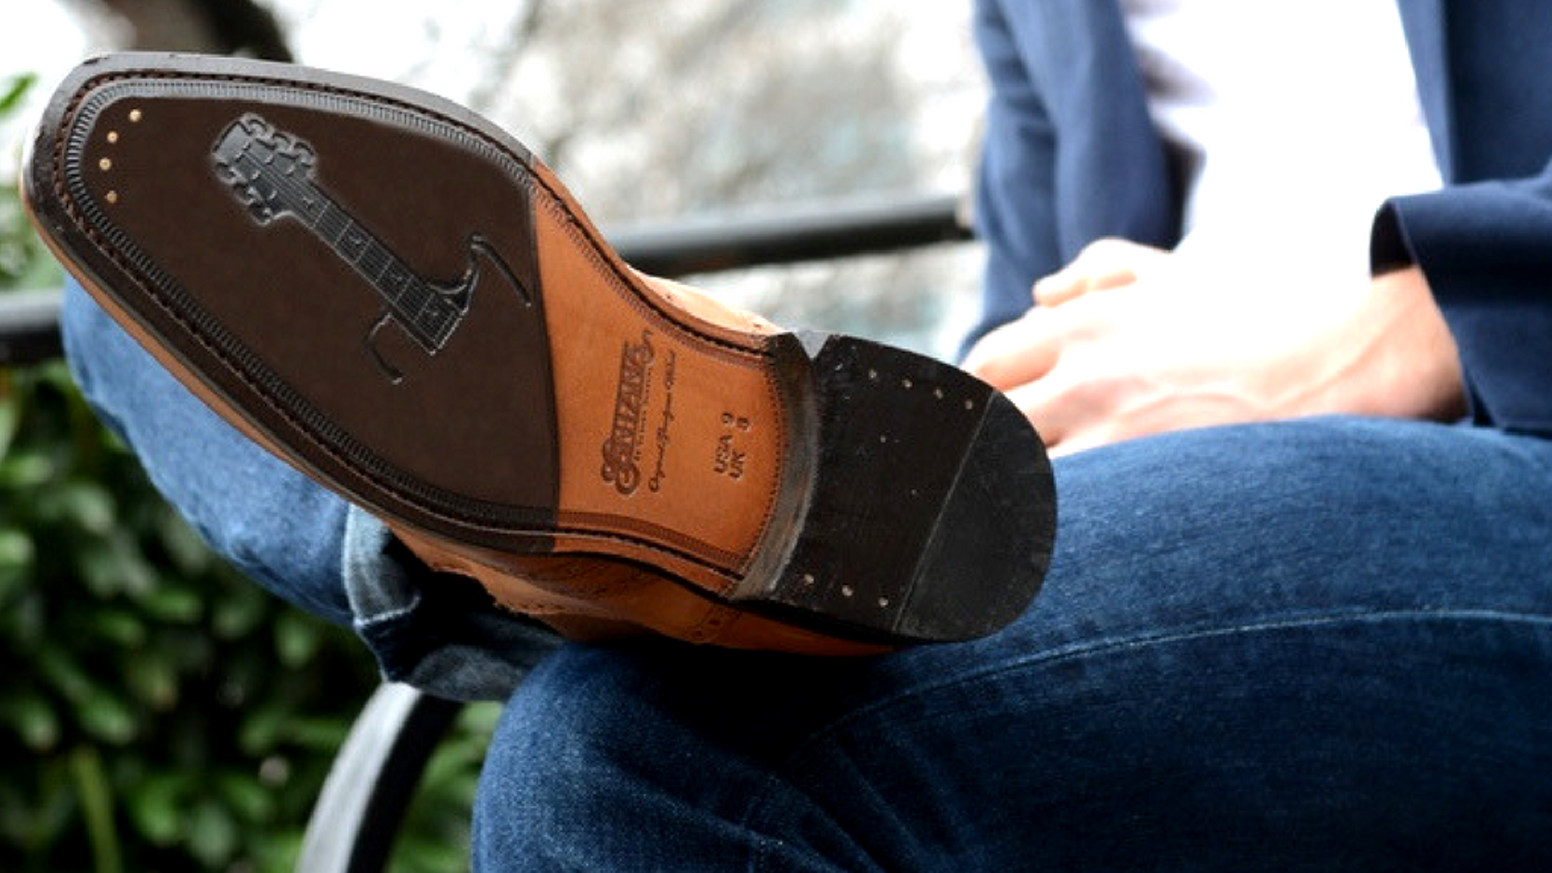 82ad6bbccb Feel the sole with the new signature shoe line made with traditional  craftsmanship   flavored with